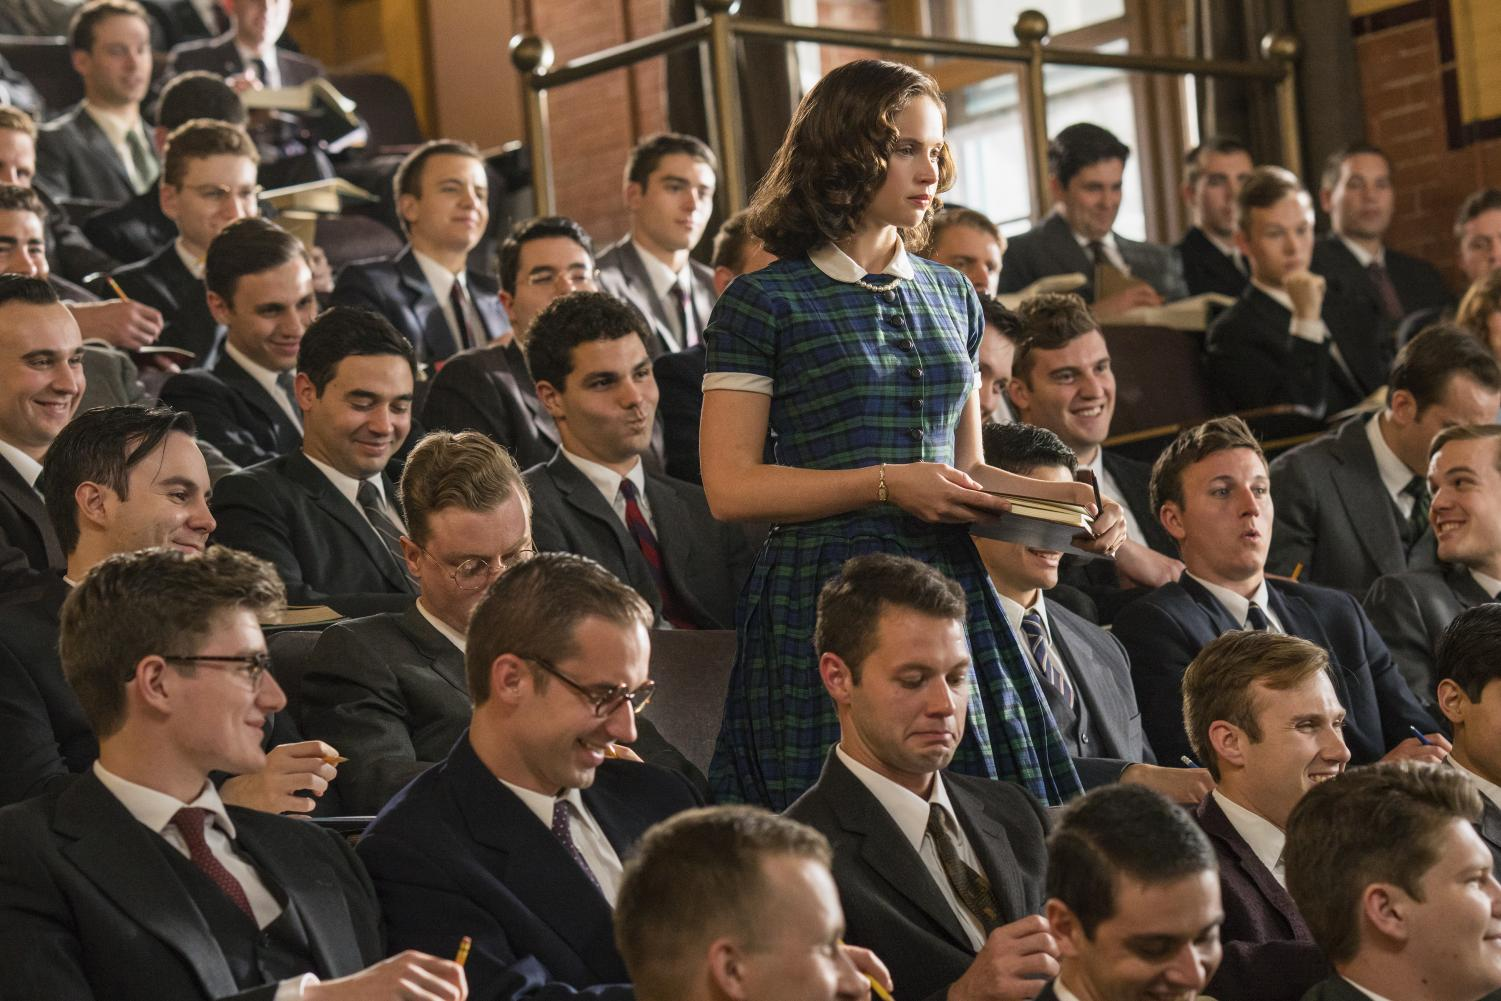 The role of Ruth Bader Ginsburg, played by Felicity Jones was one of few women at Harvard Law School.